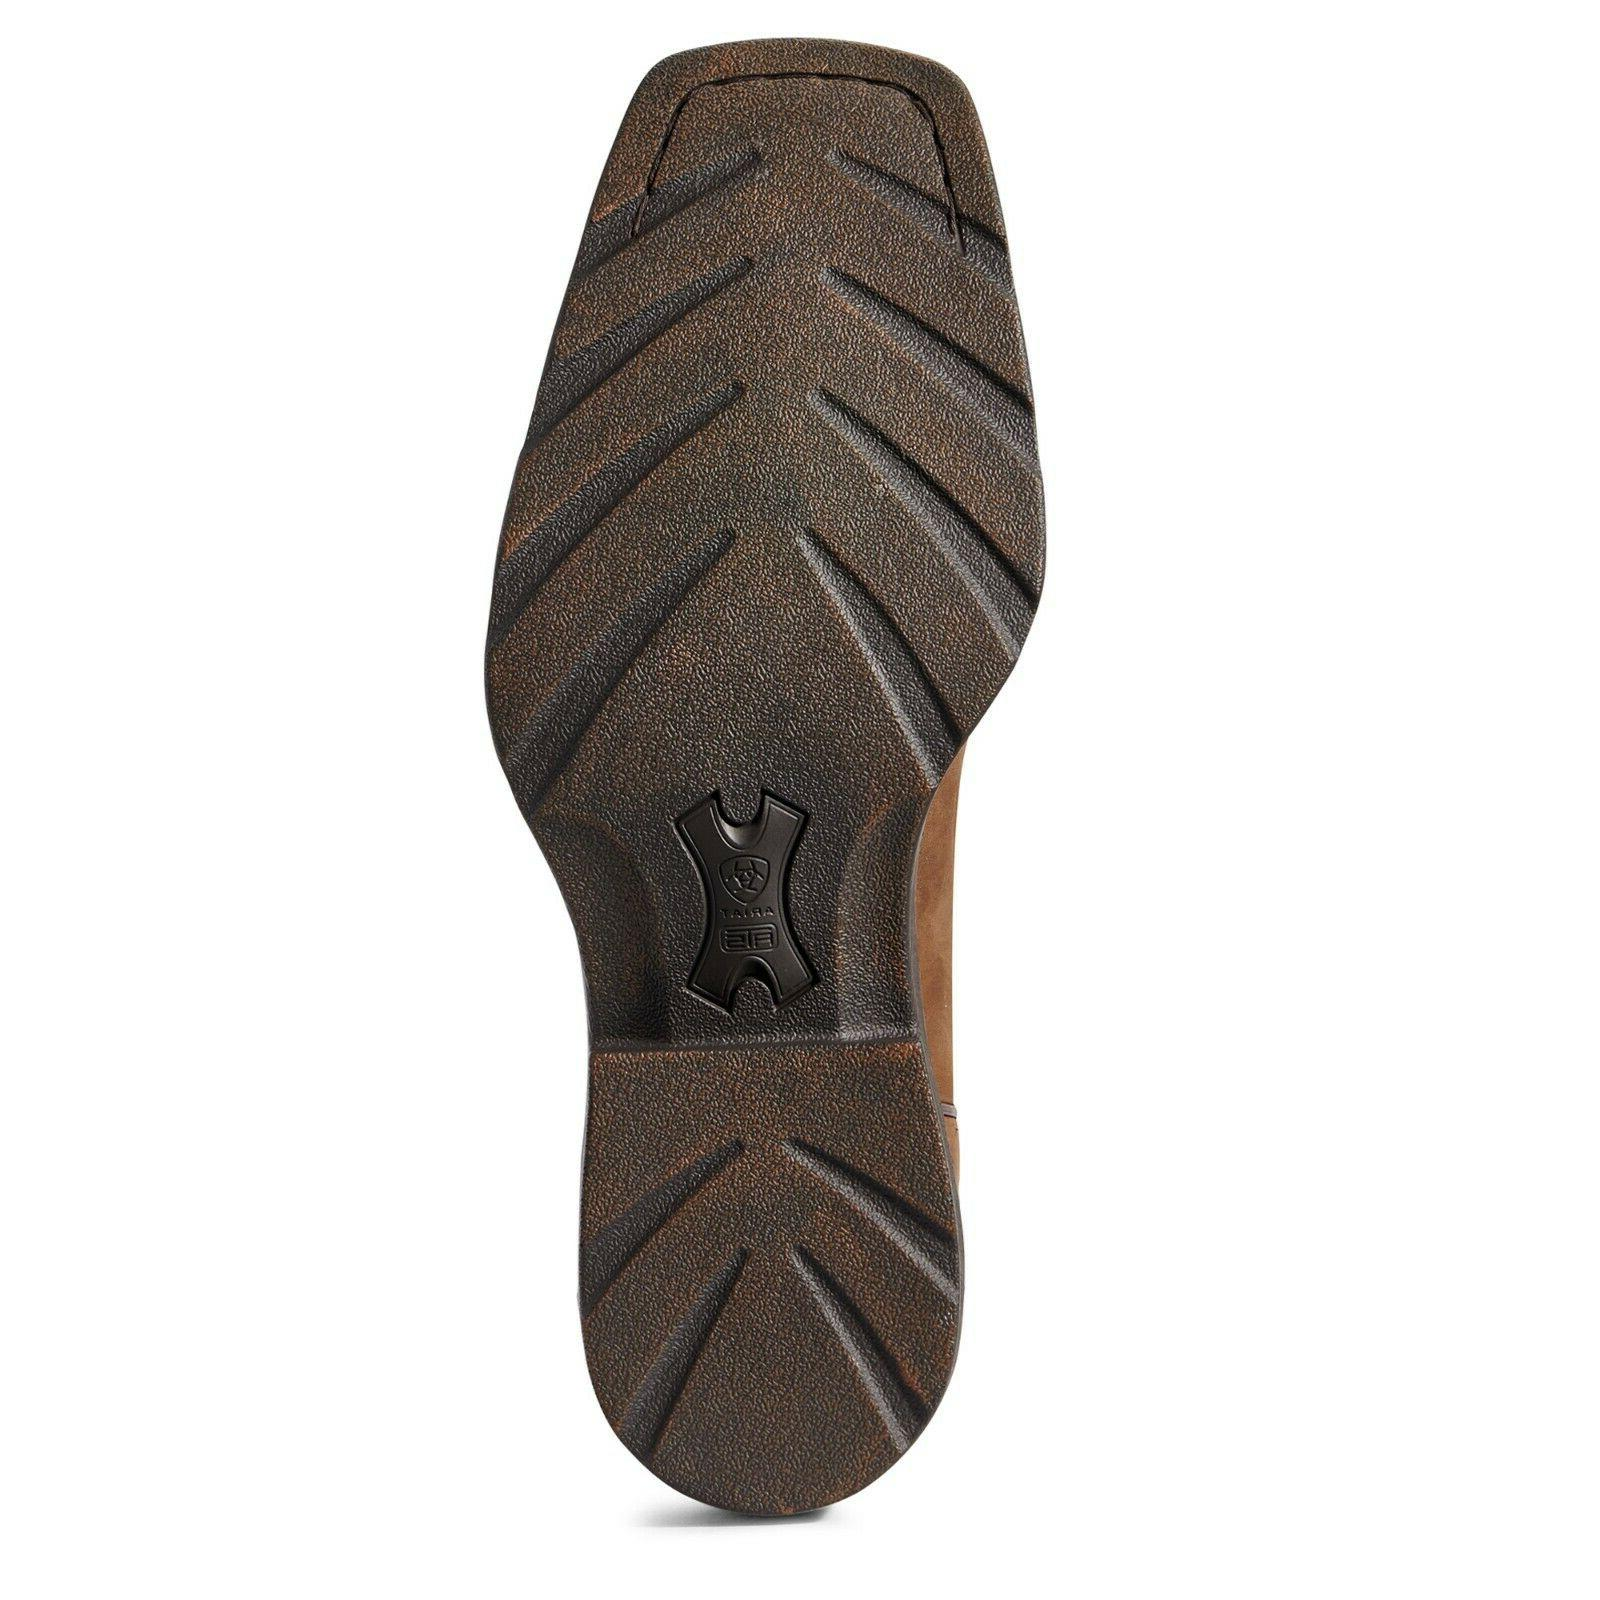 Ariat Country Boots 10031449